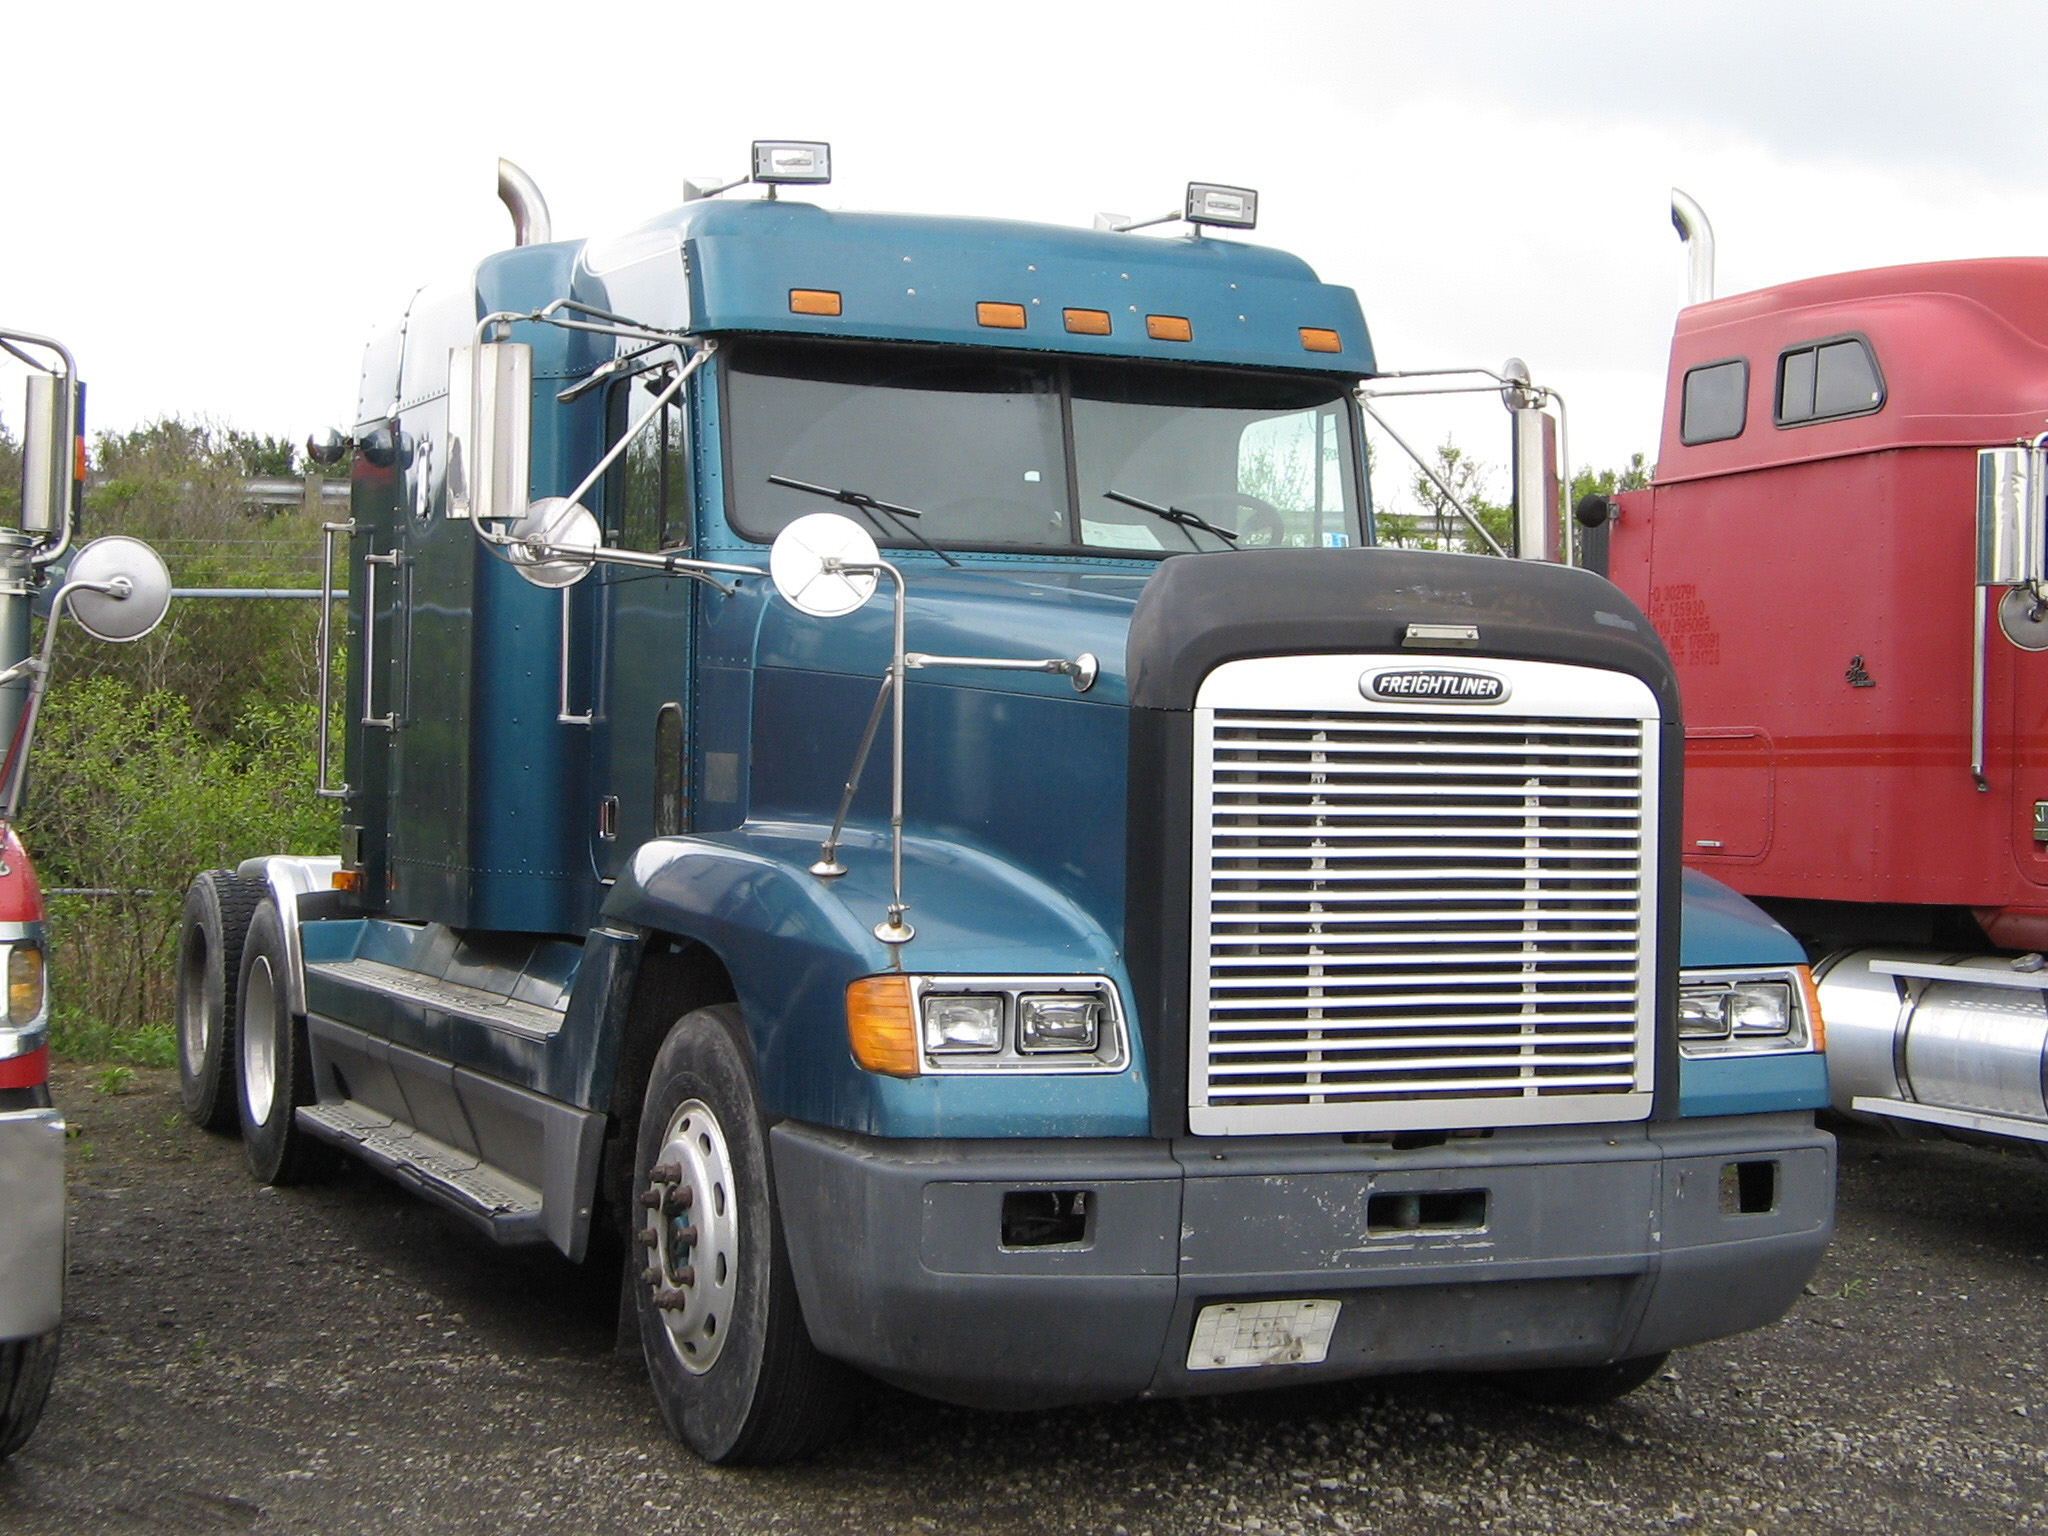 Freightliner Fld 120 : Freightliner fld photos photogallery with pics